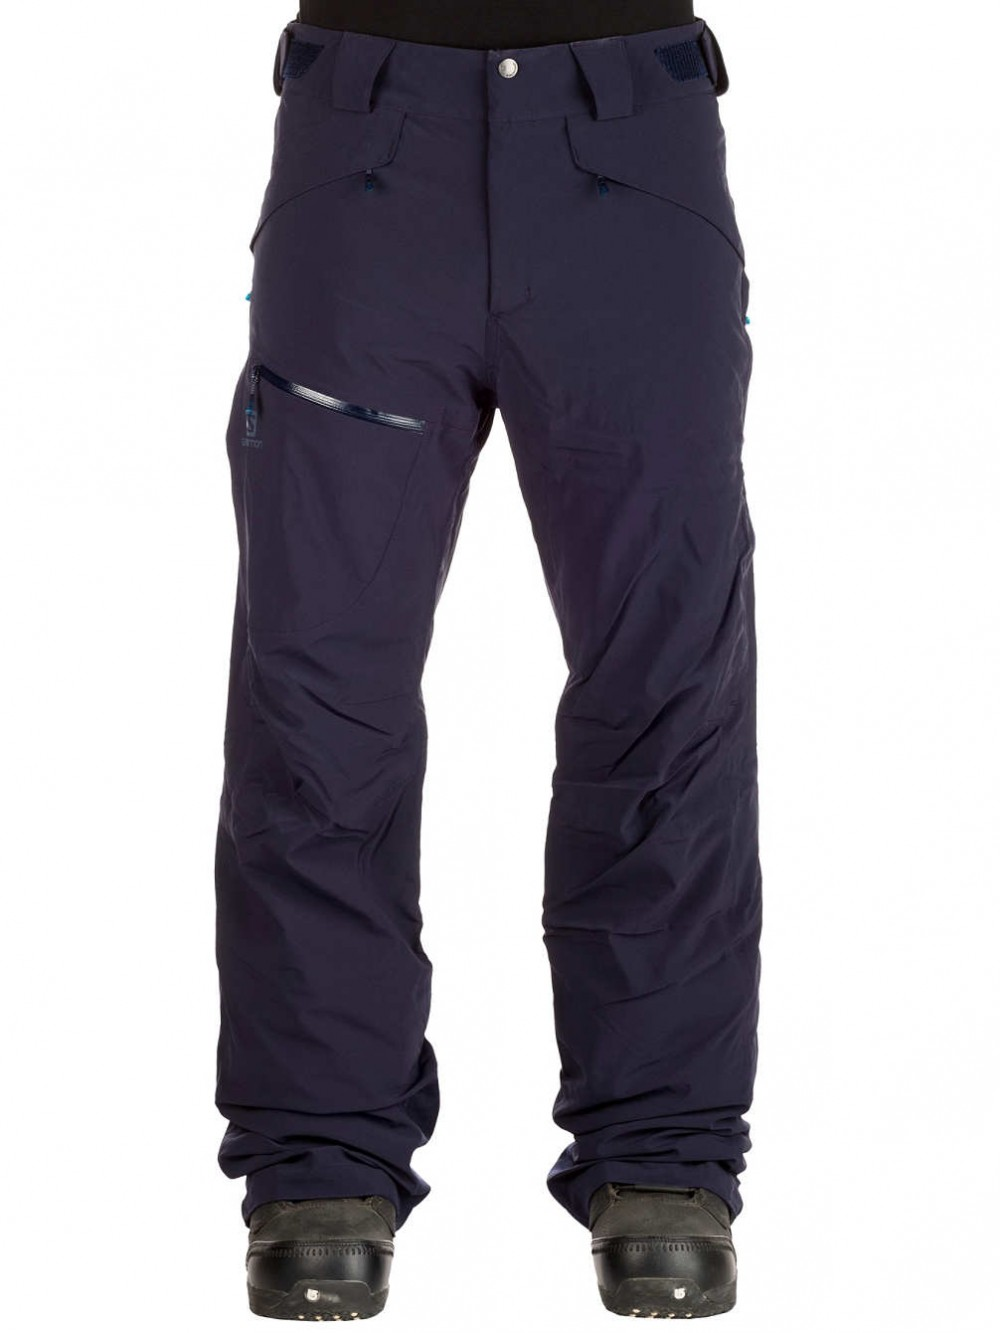 Штаны SALOMON chill out bib pant (размер XXL) - 18810